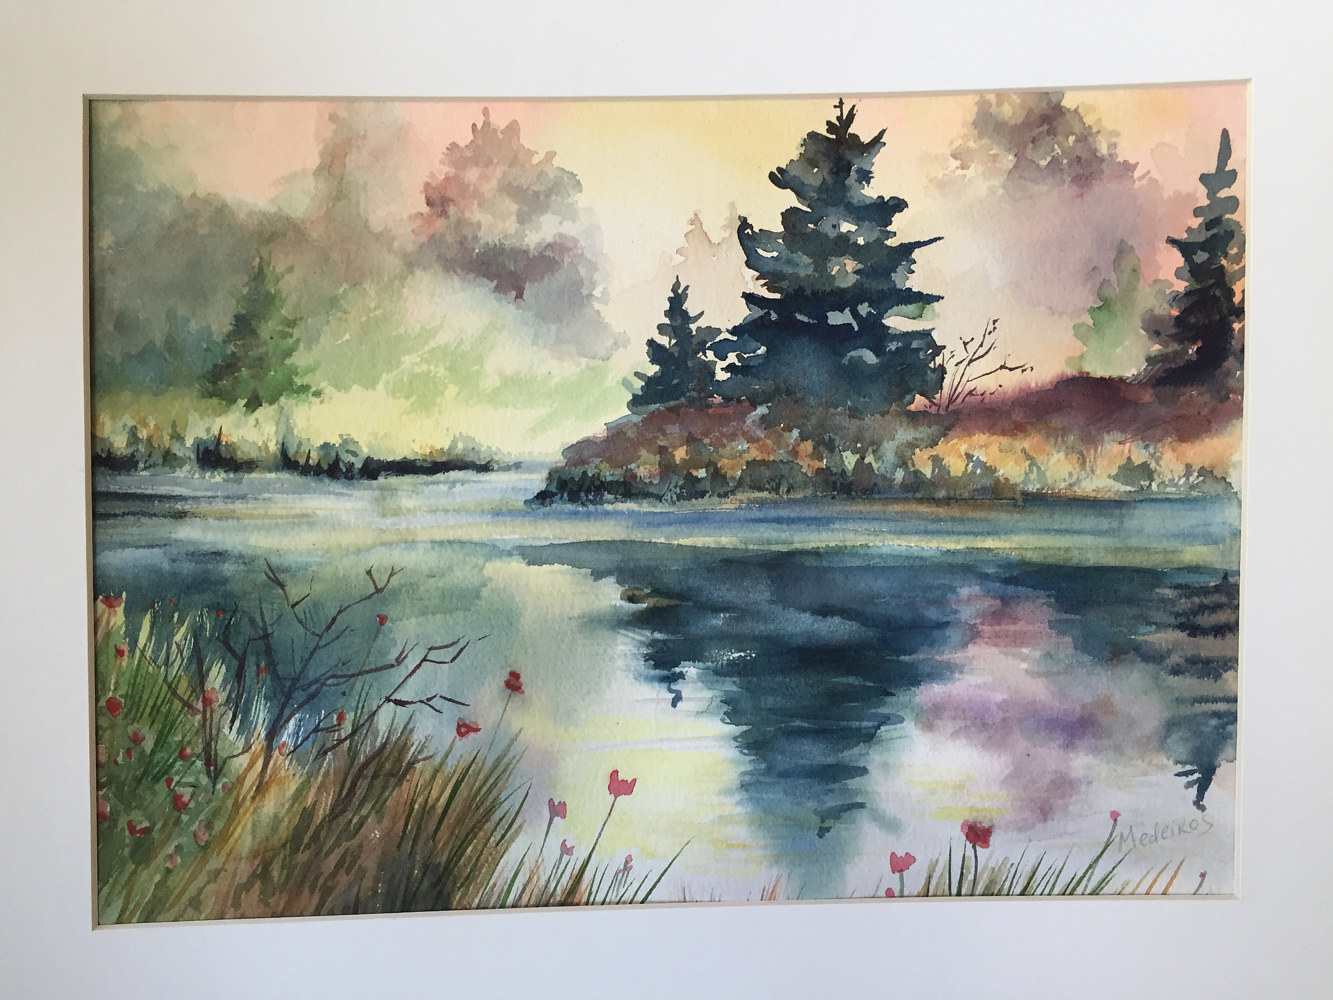 Watercolor Morning reflections by Elizabeth4361 Medeiros